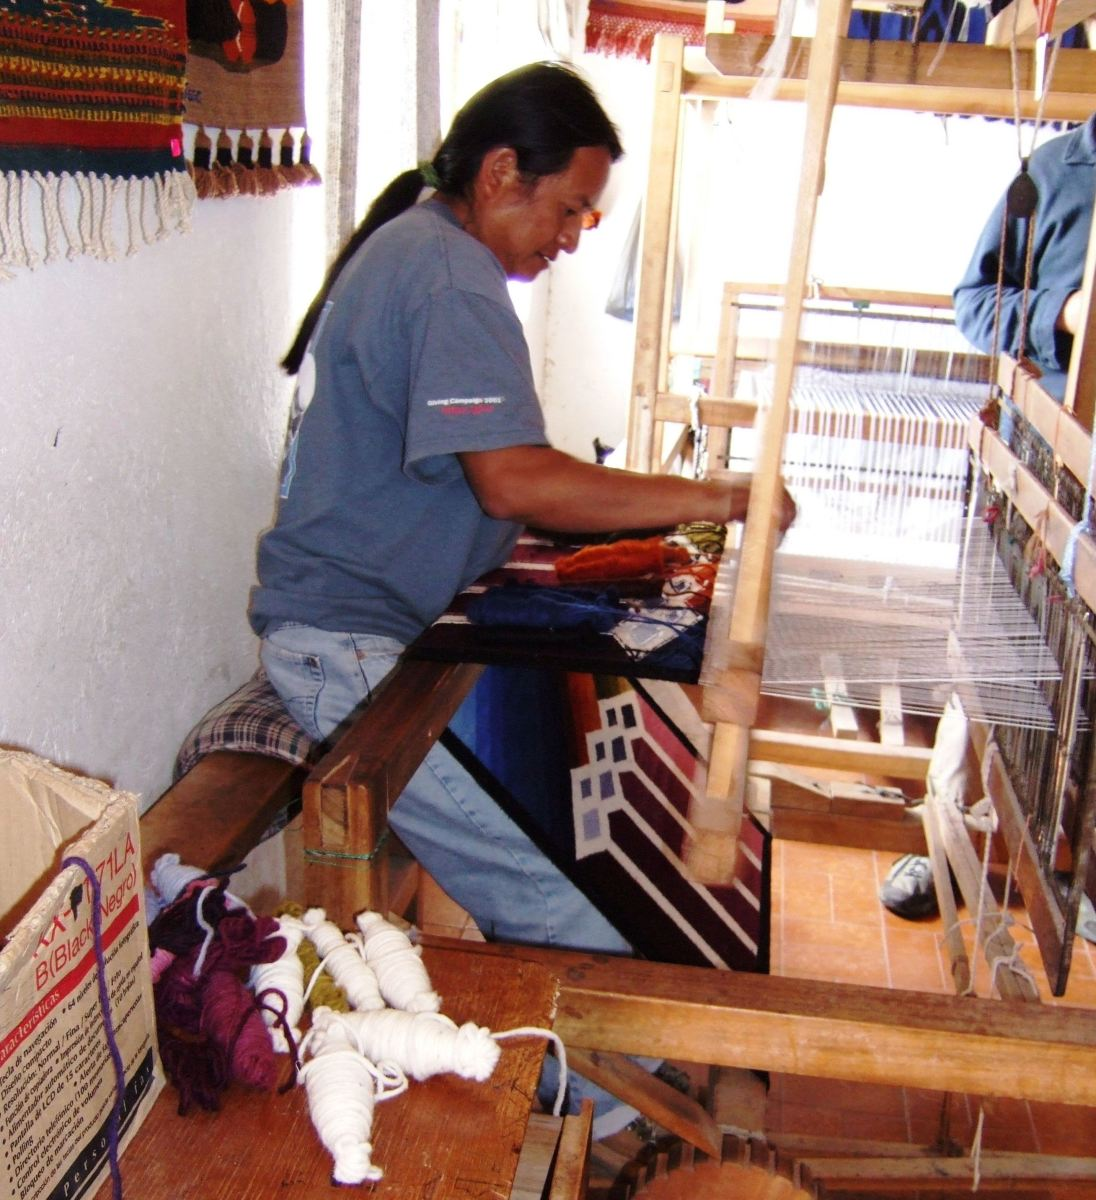 Jose Cotacachi at work in his weaving studio.